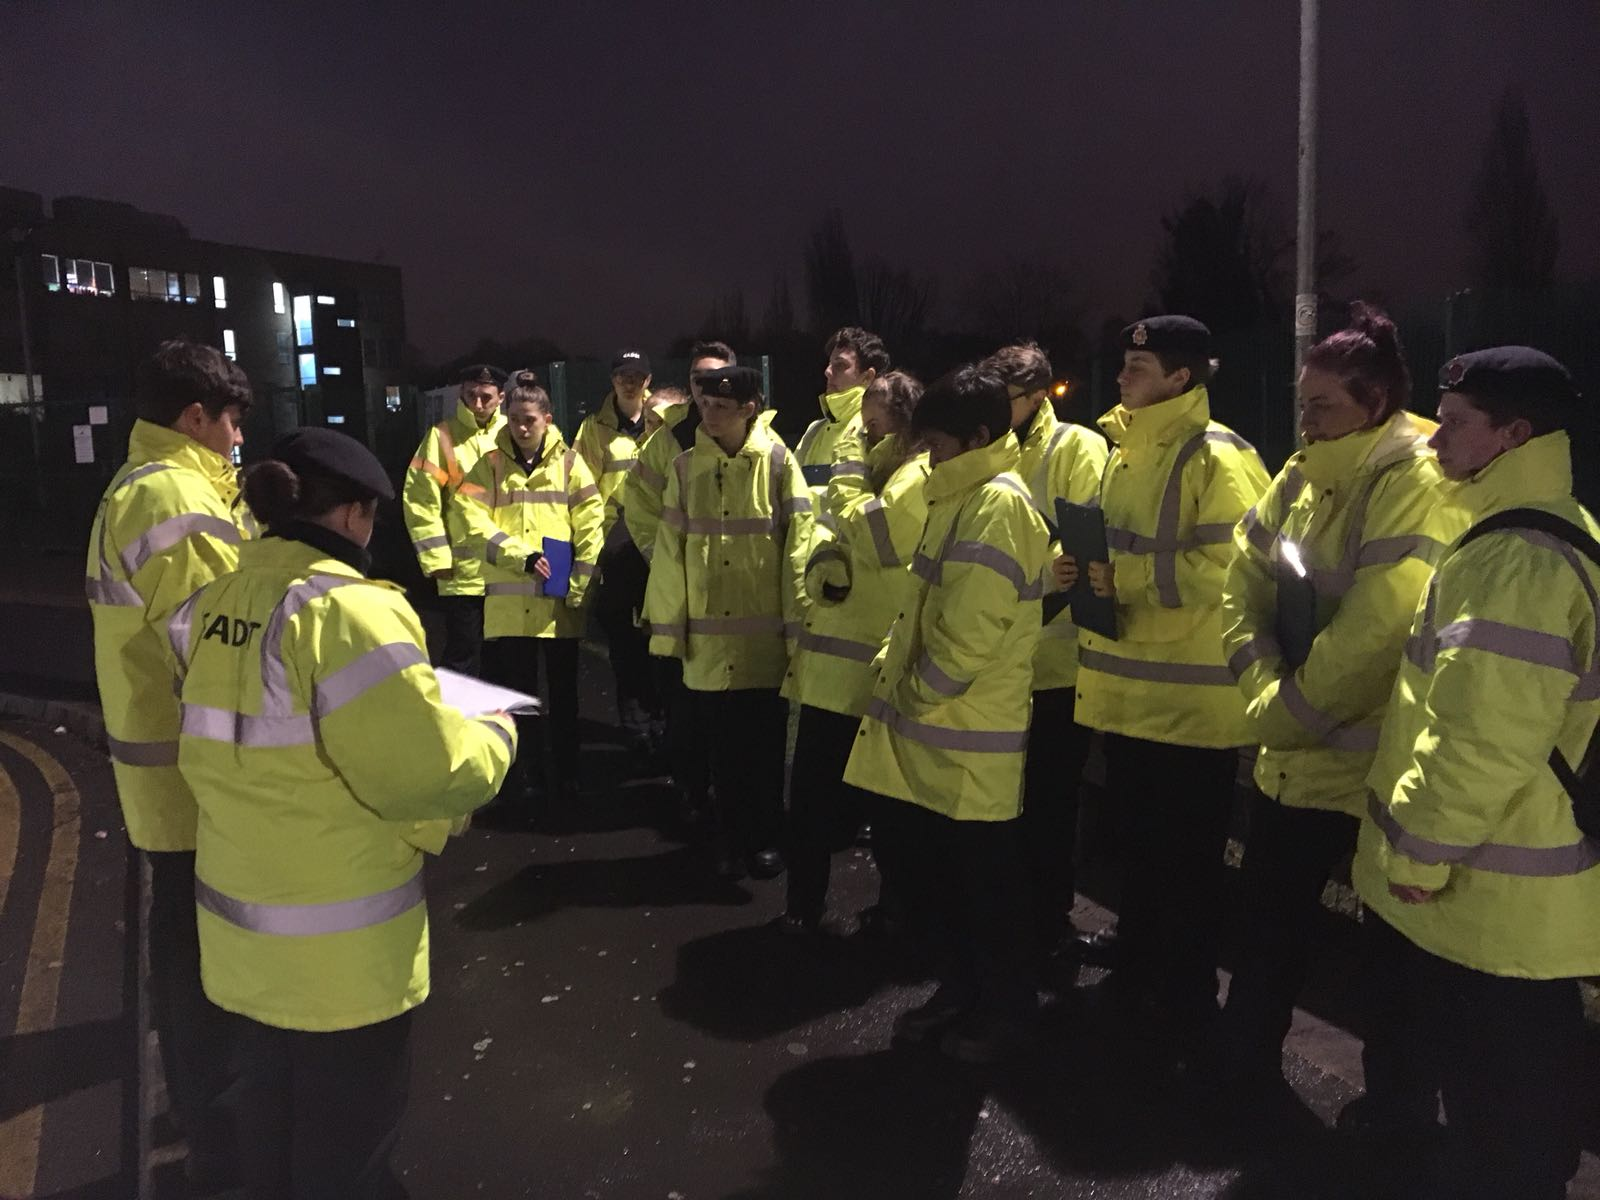 VPC Stockport 'On street briefing'